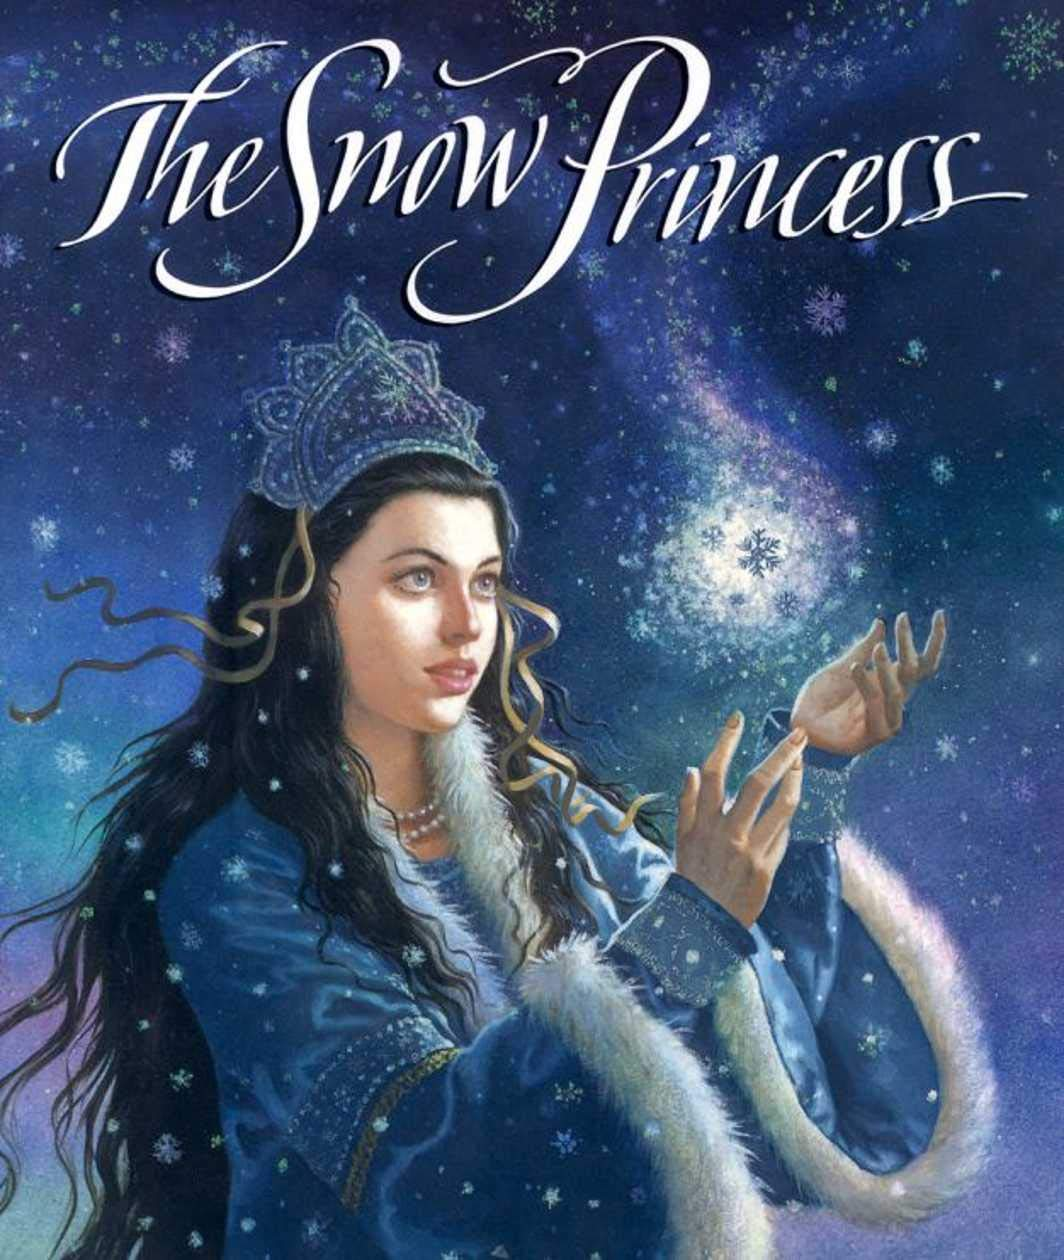 The Snow Princess: Recommended for classic children's picture books